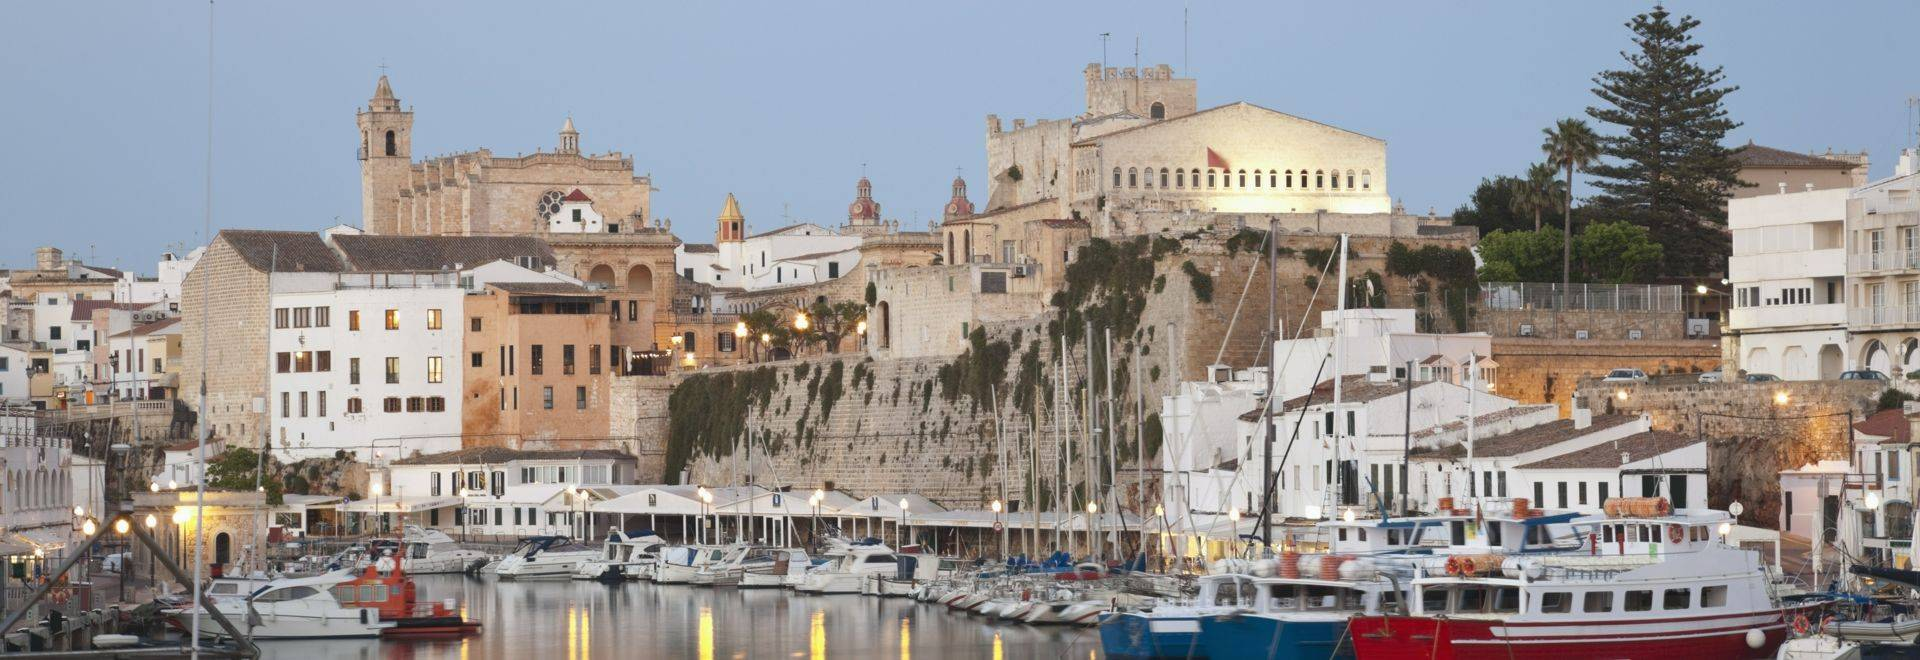 Spain, Menorca, View of Ciutadella with town hall and cathedral